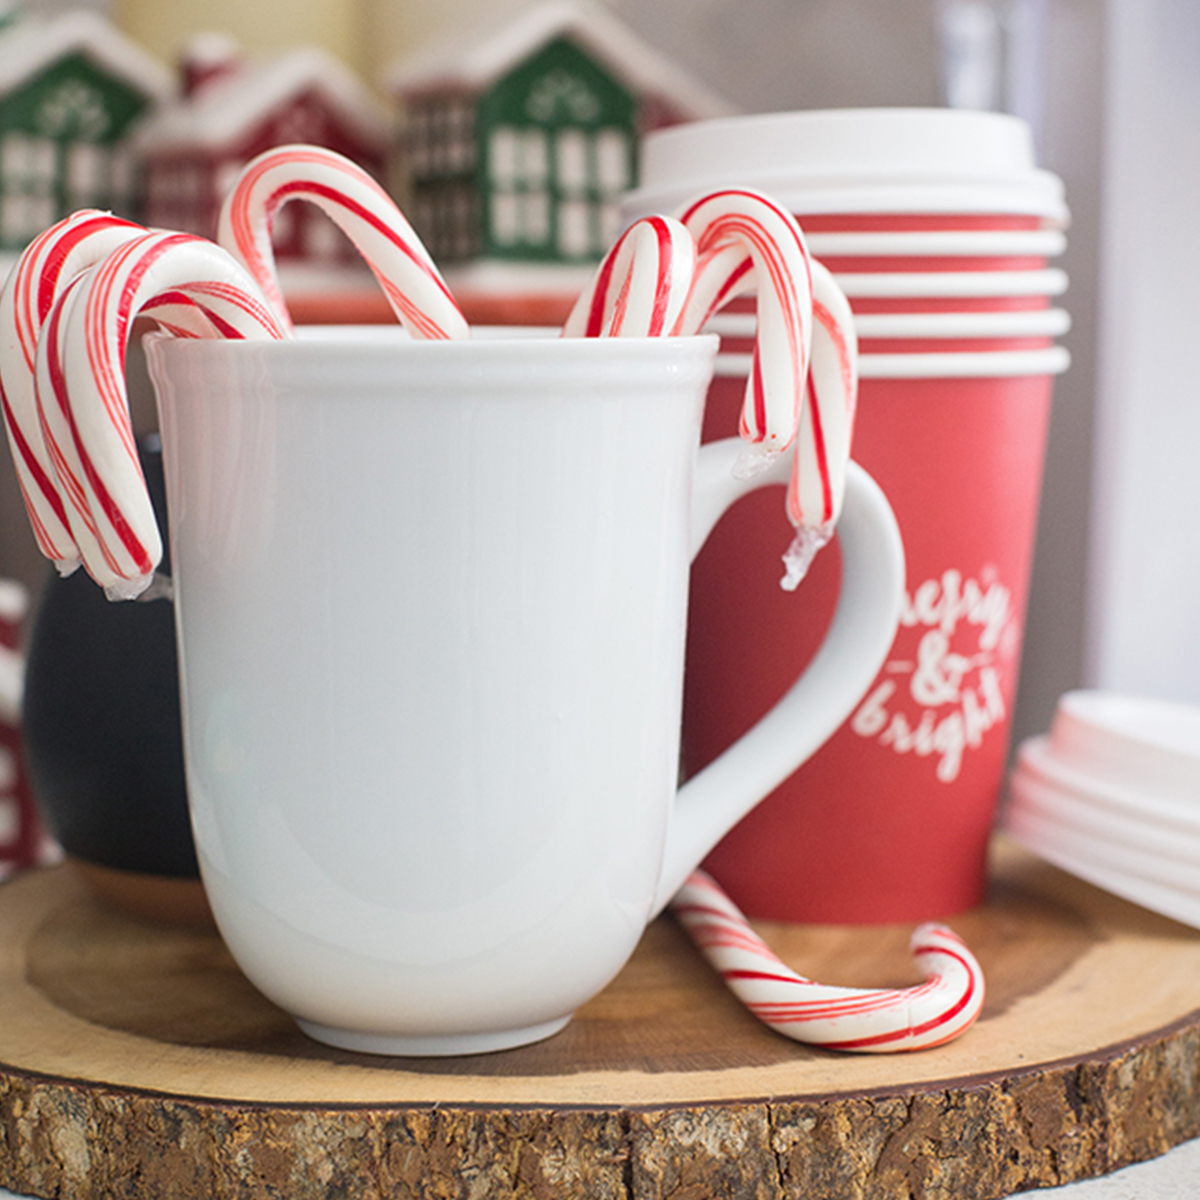 Better Homes & Gardens white mug with candy canes in it photo